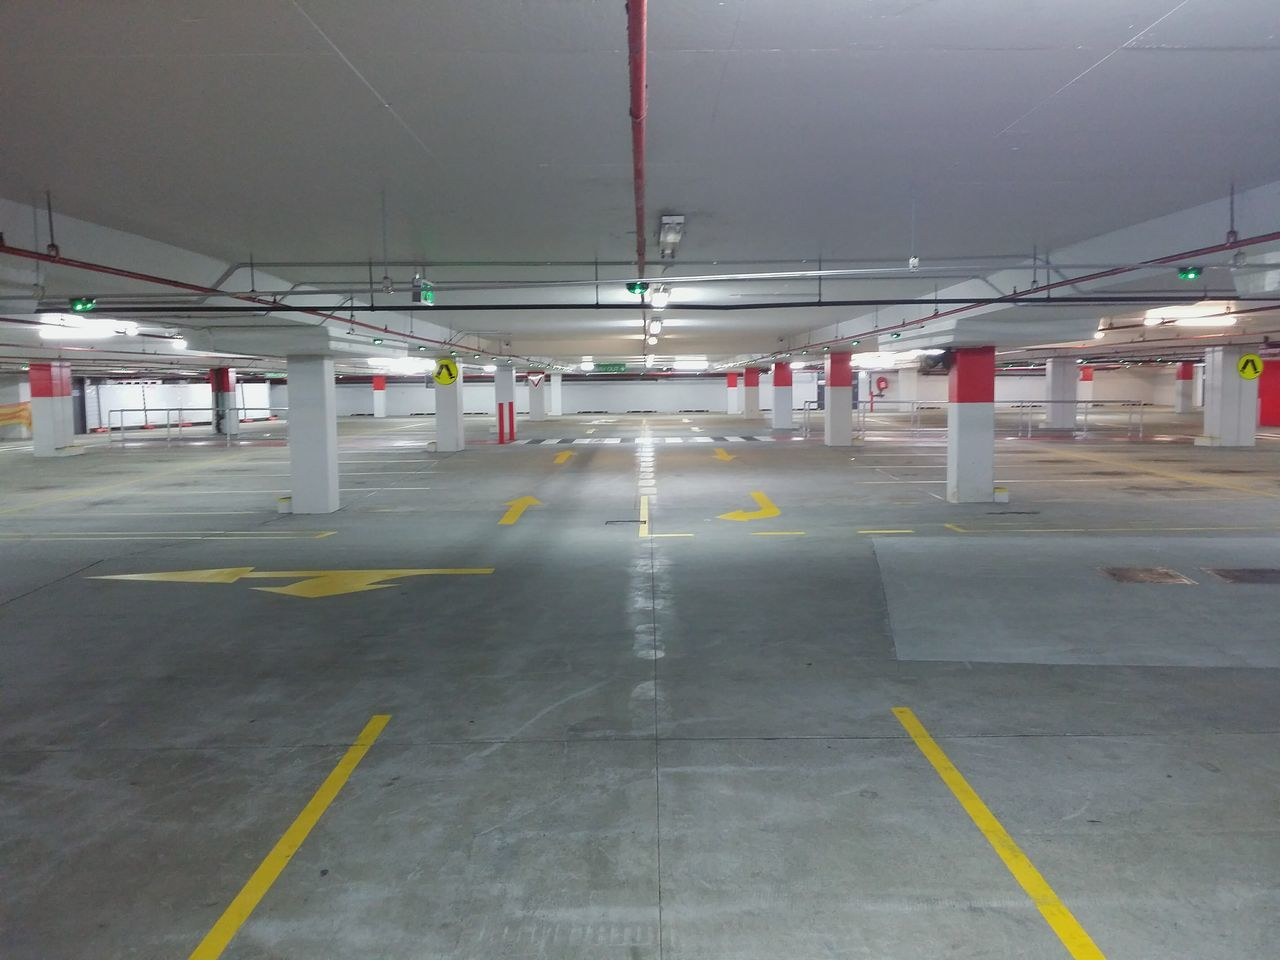 Urbanphotography Architecture Urban Geometry Parking Lot Urban Streetphotography Urbanexploration City Life Taking Photos Urban Lifestyle